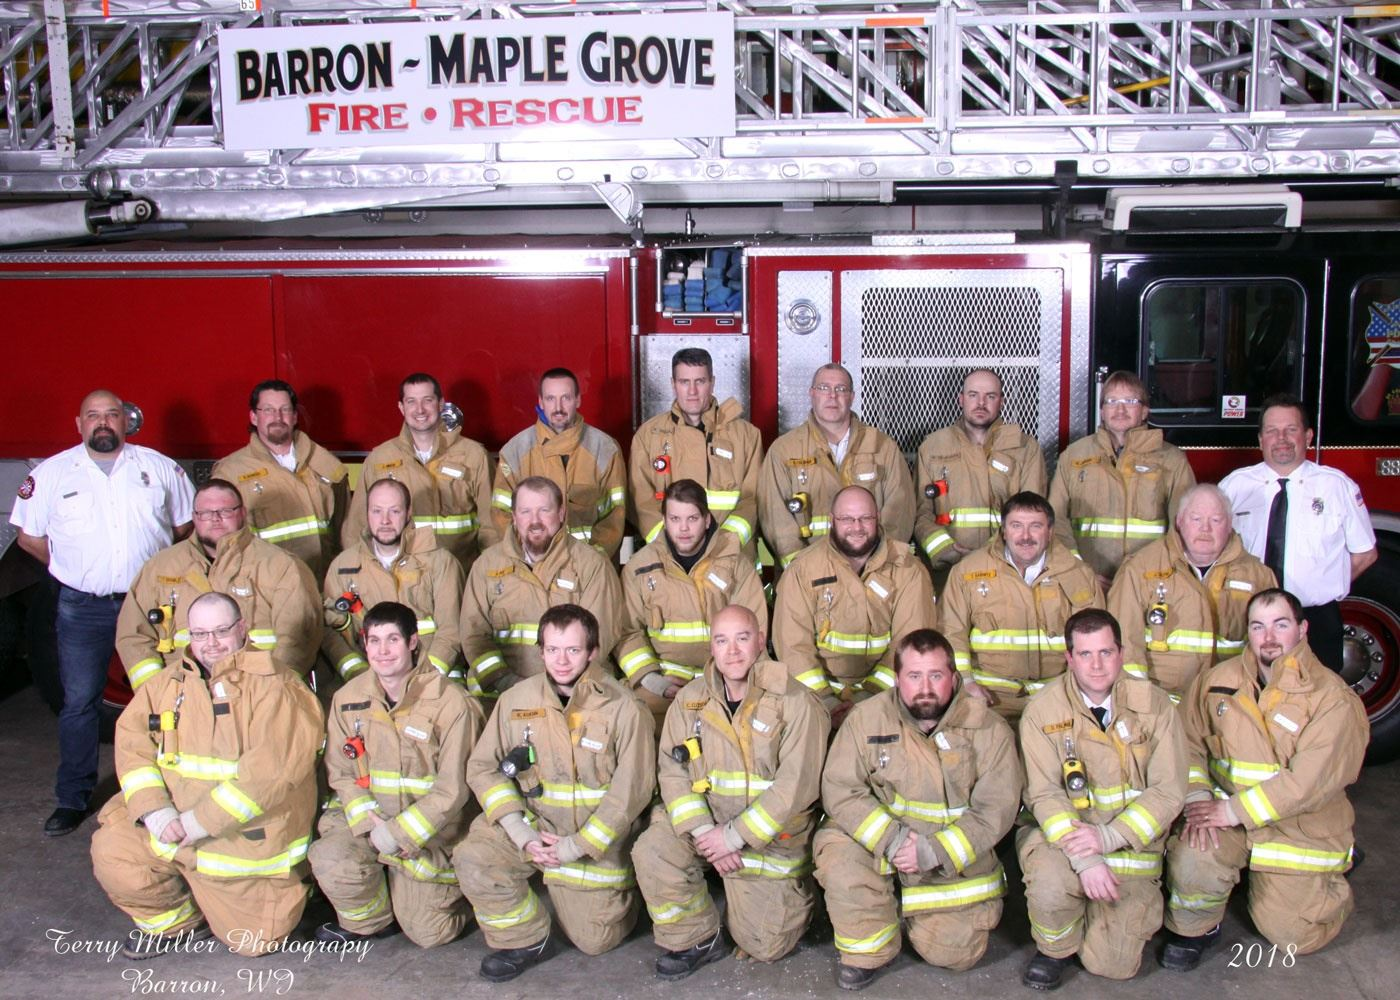 1148-Barron-Maple-Grove-Fire-Dept